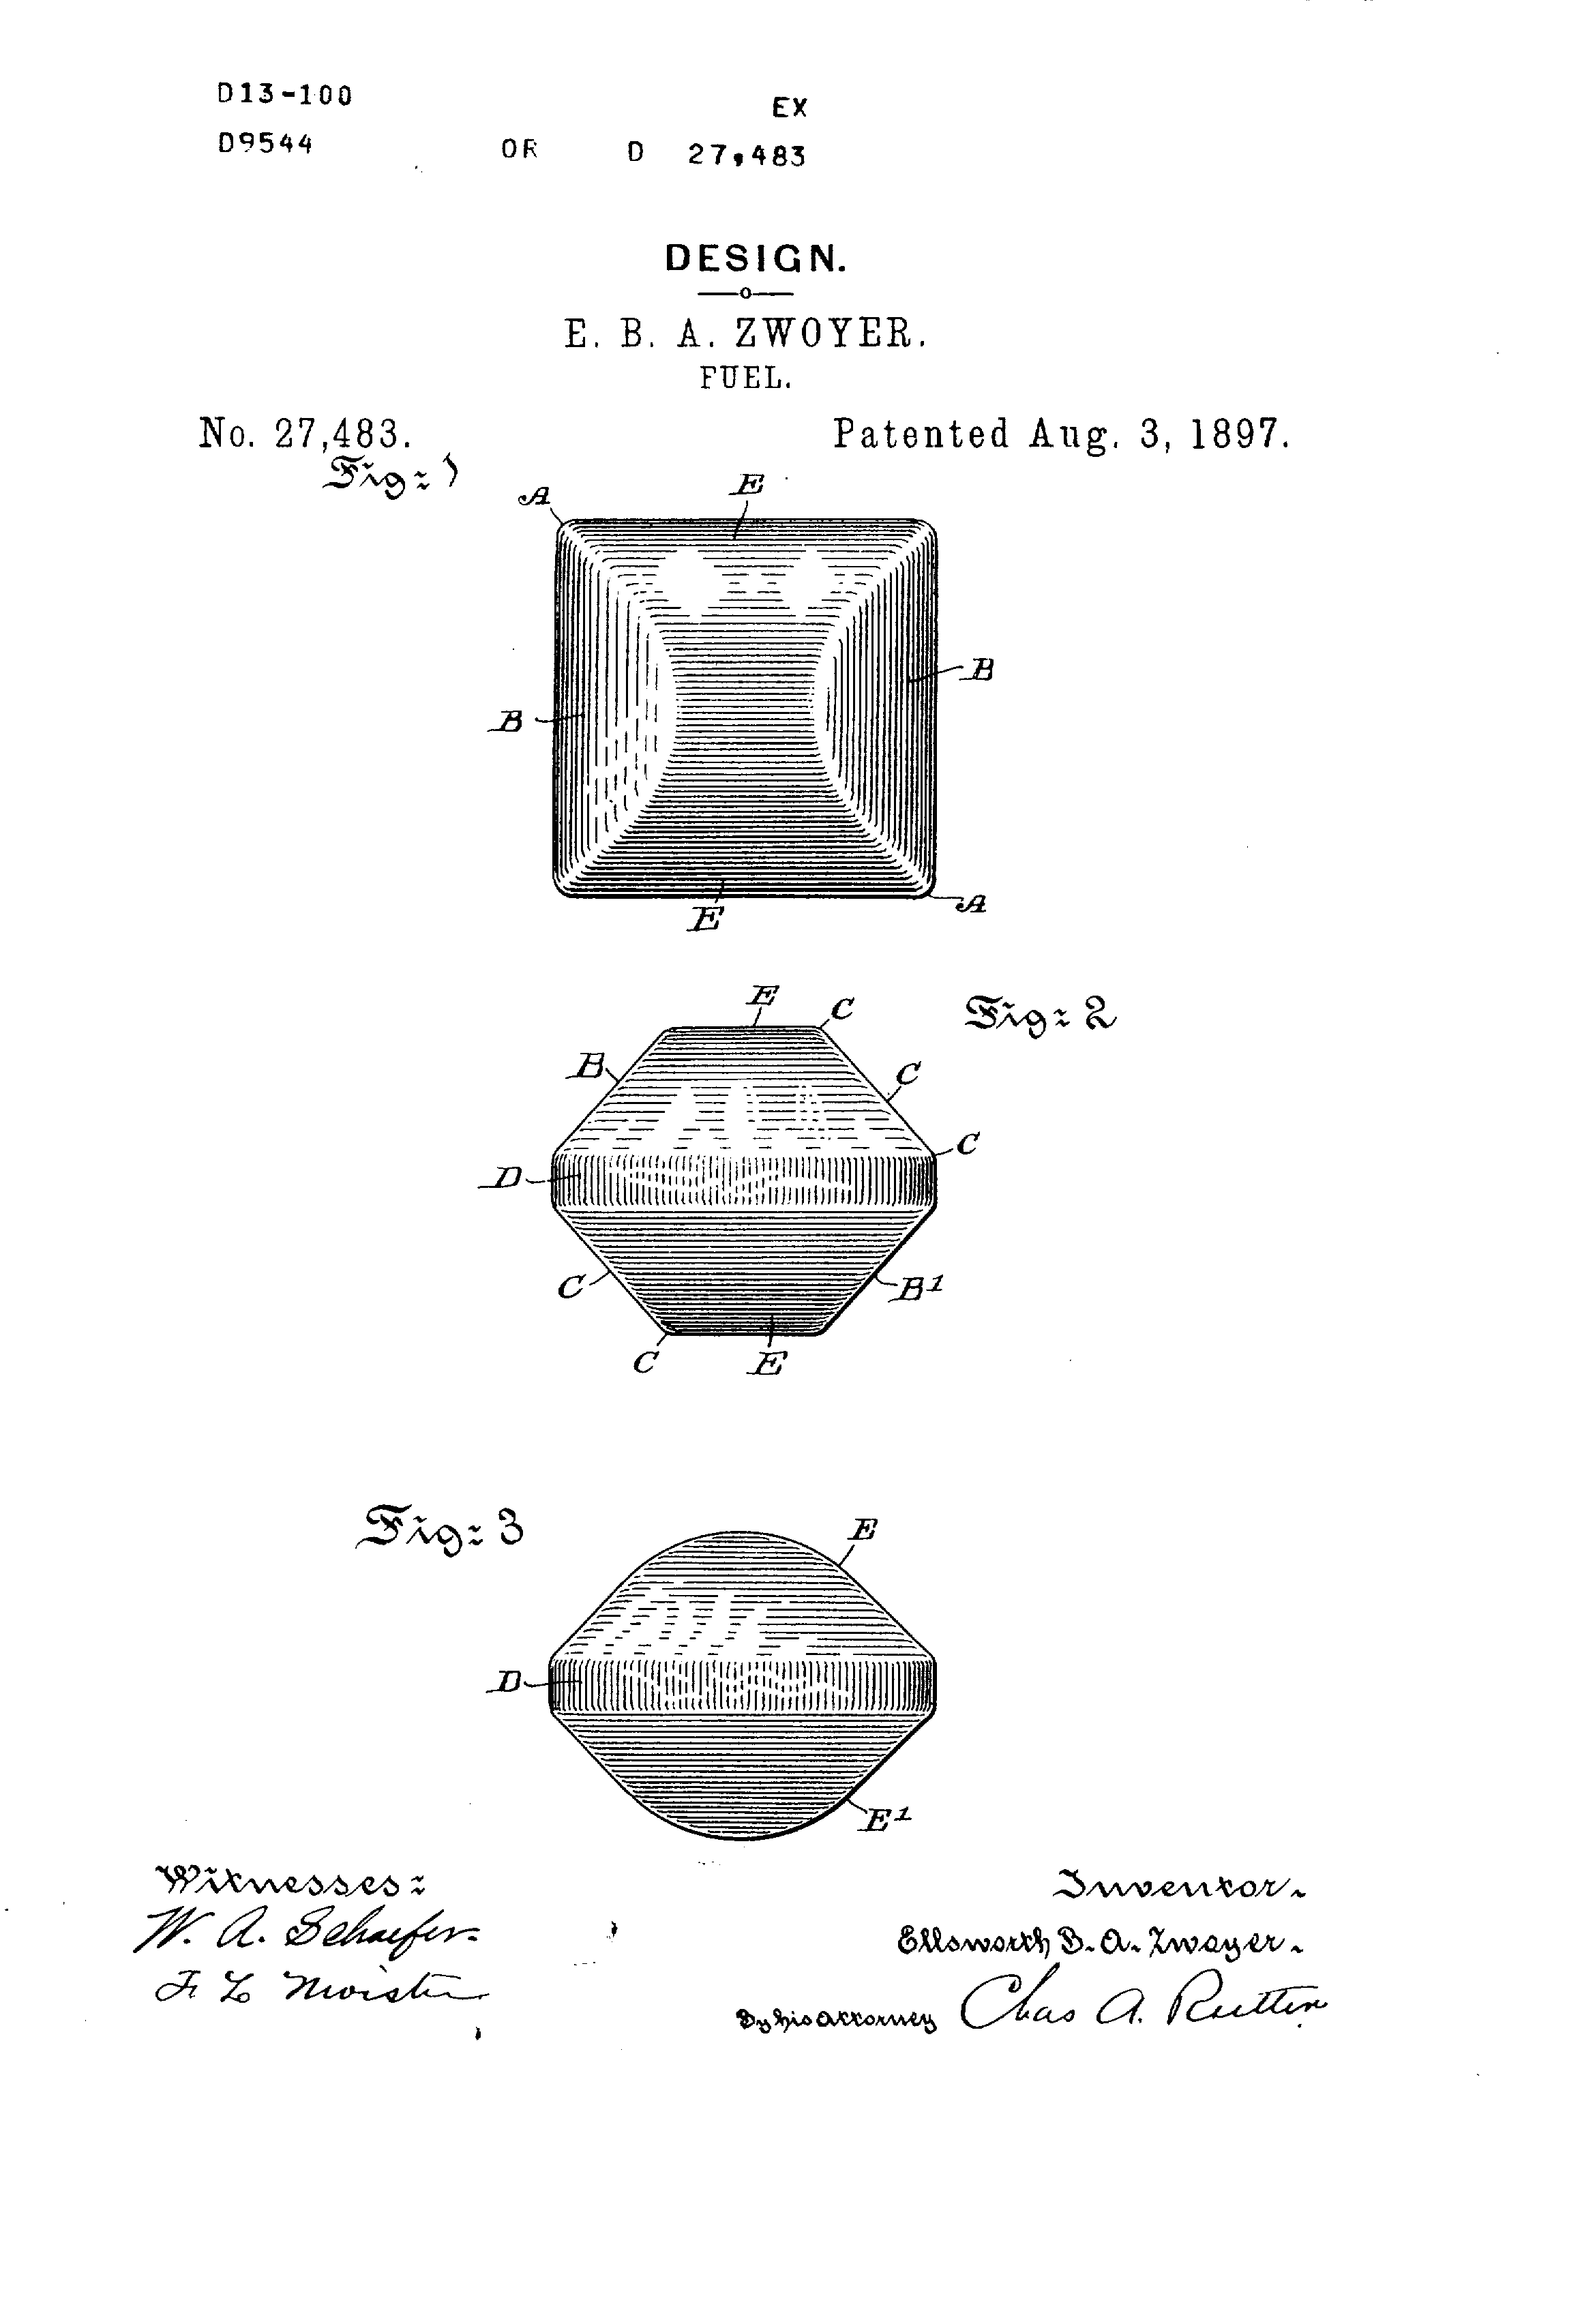 Independence Day Innovations - Charcoal Briquette Patent